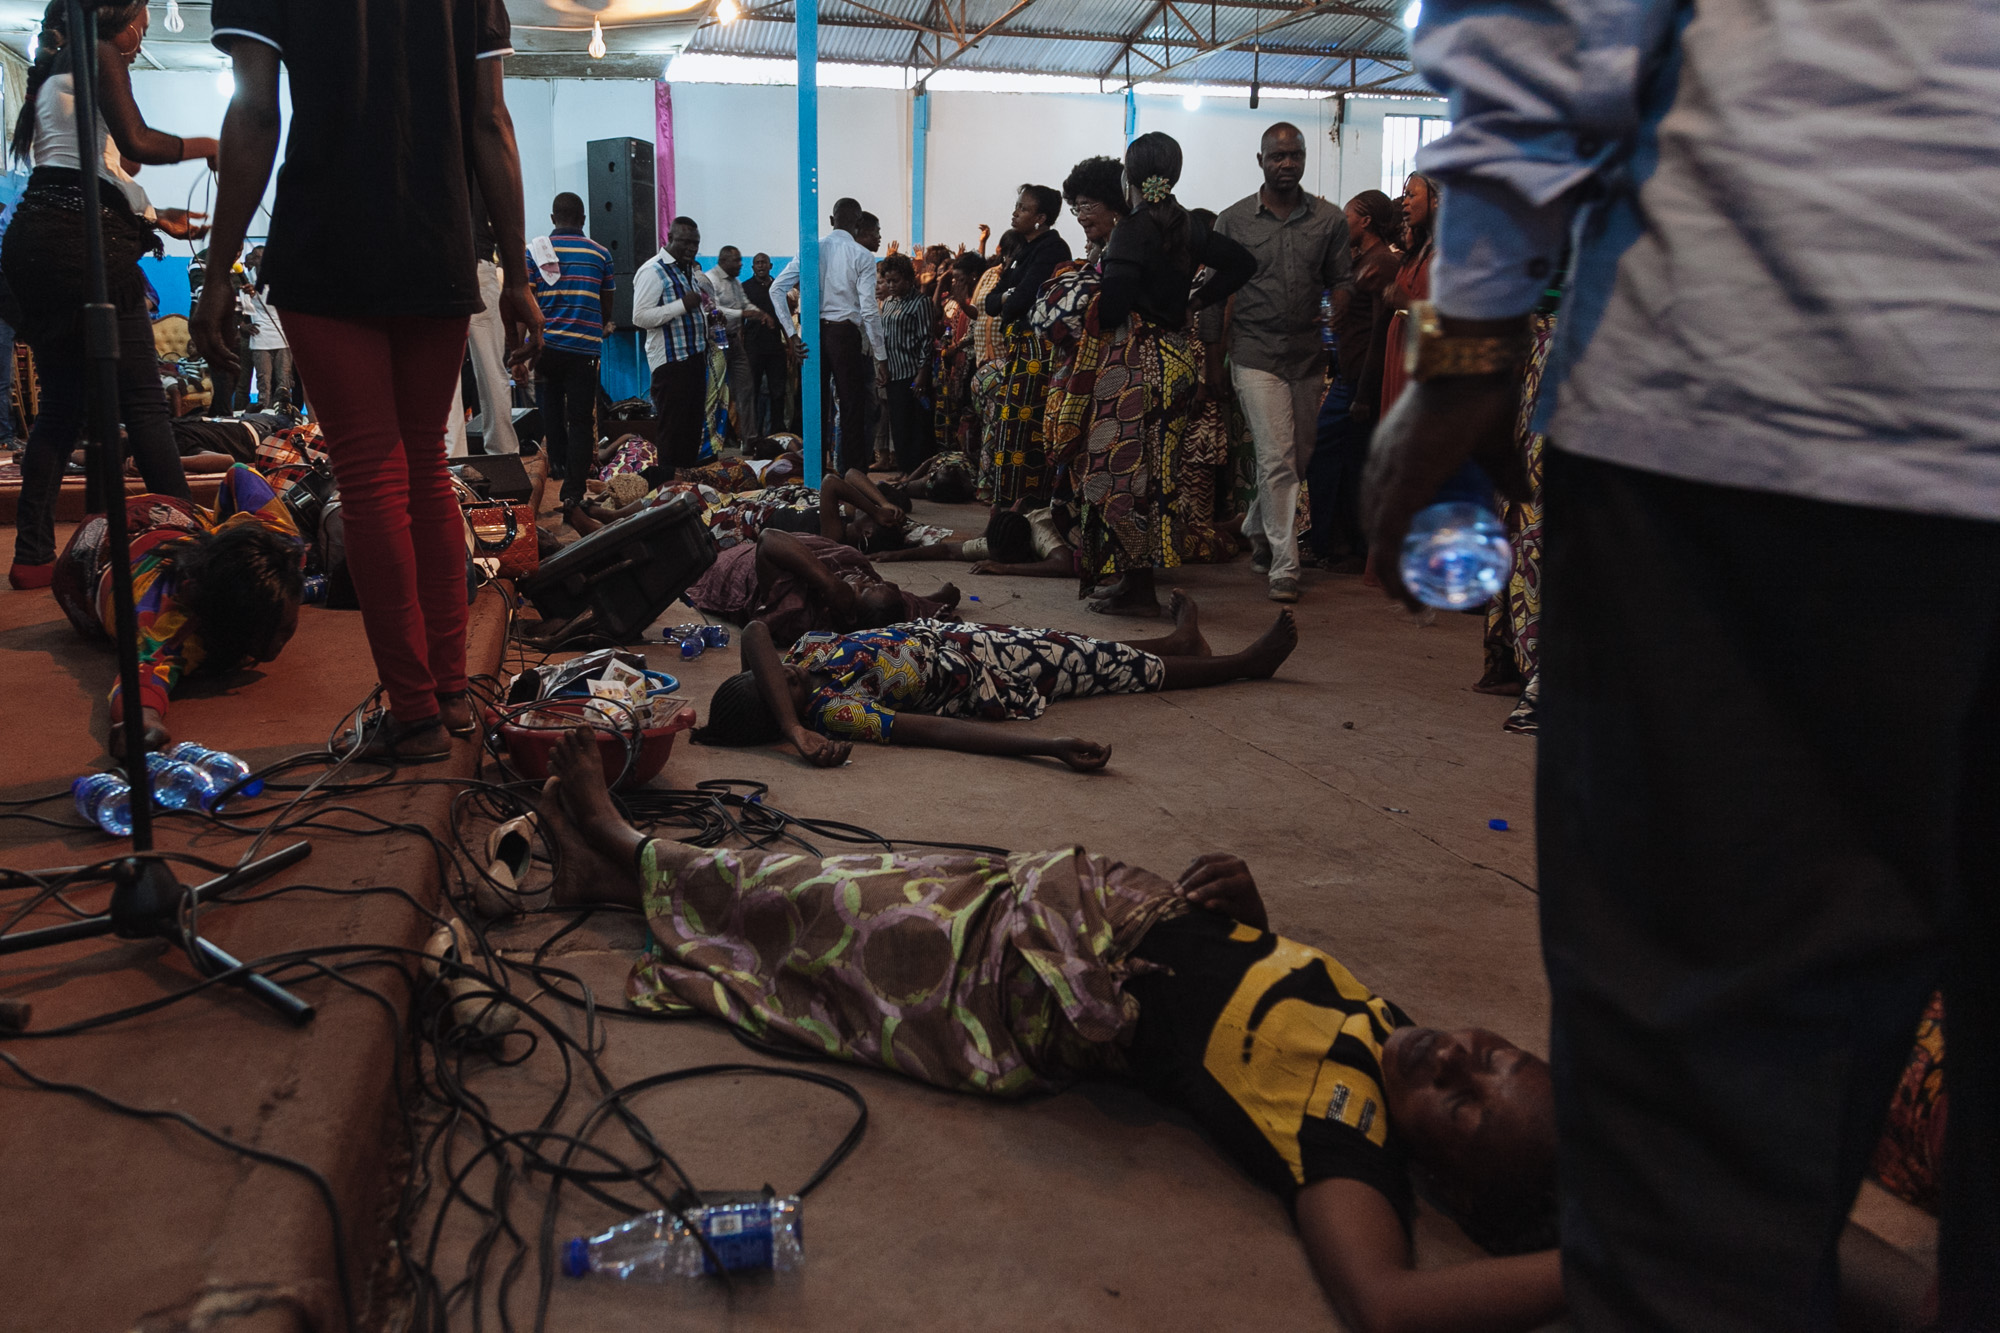 Women lie on the floor of an Evangelical church in Lubumbashi after they fall into uncontrollable fits after believing they have 'caught the holy spirit'.